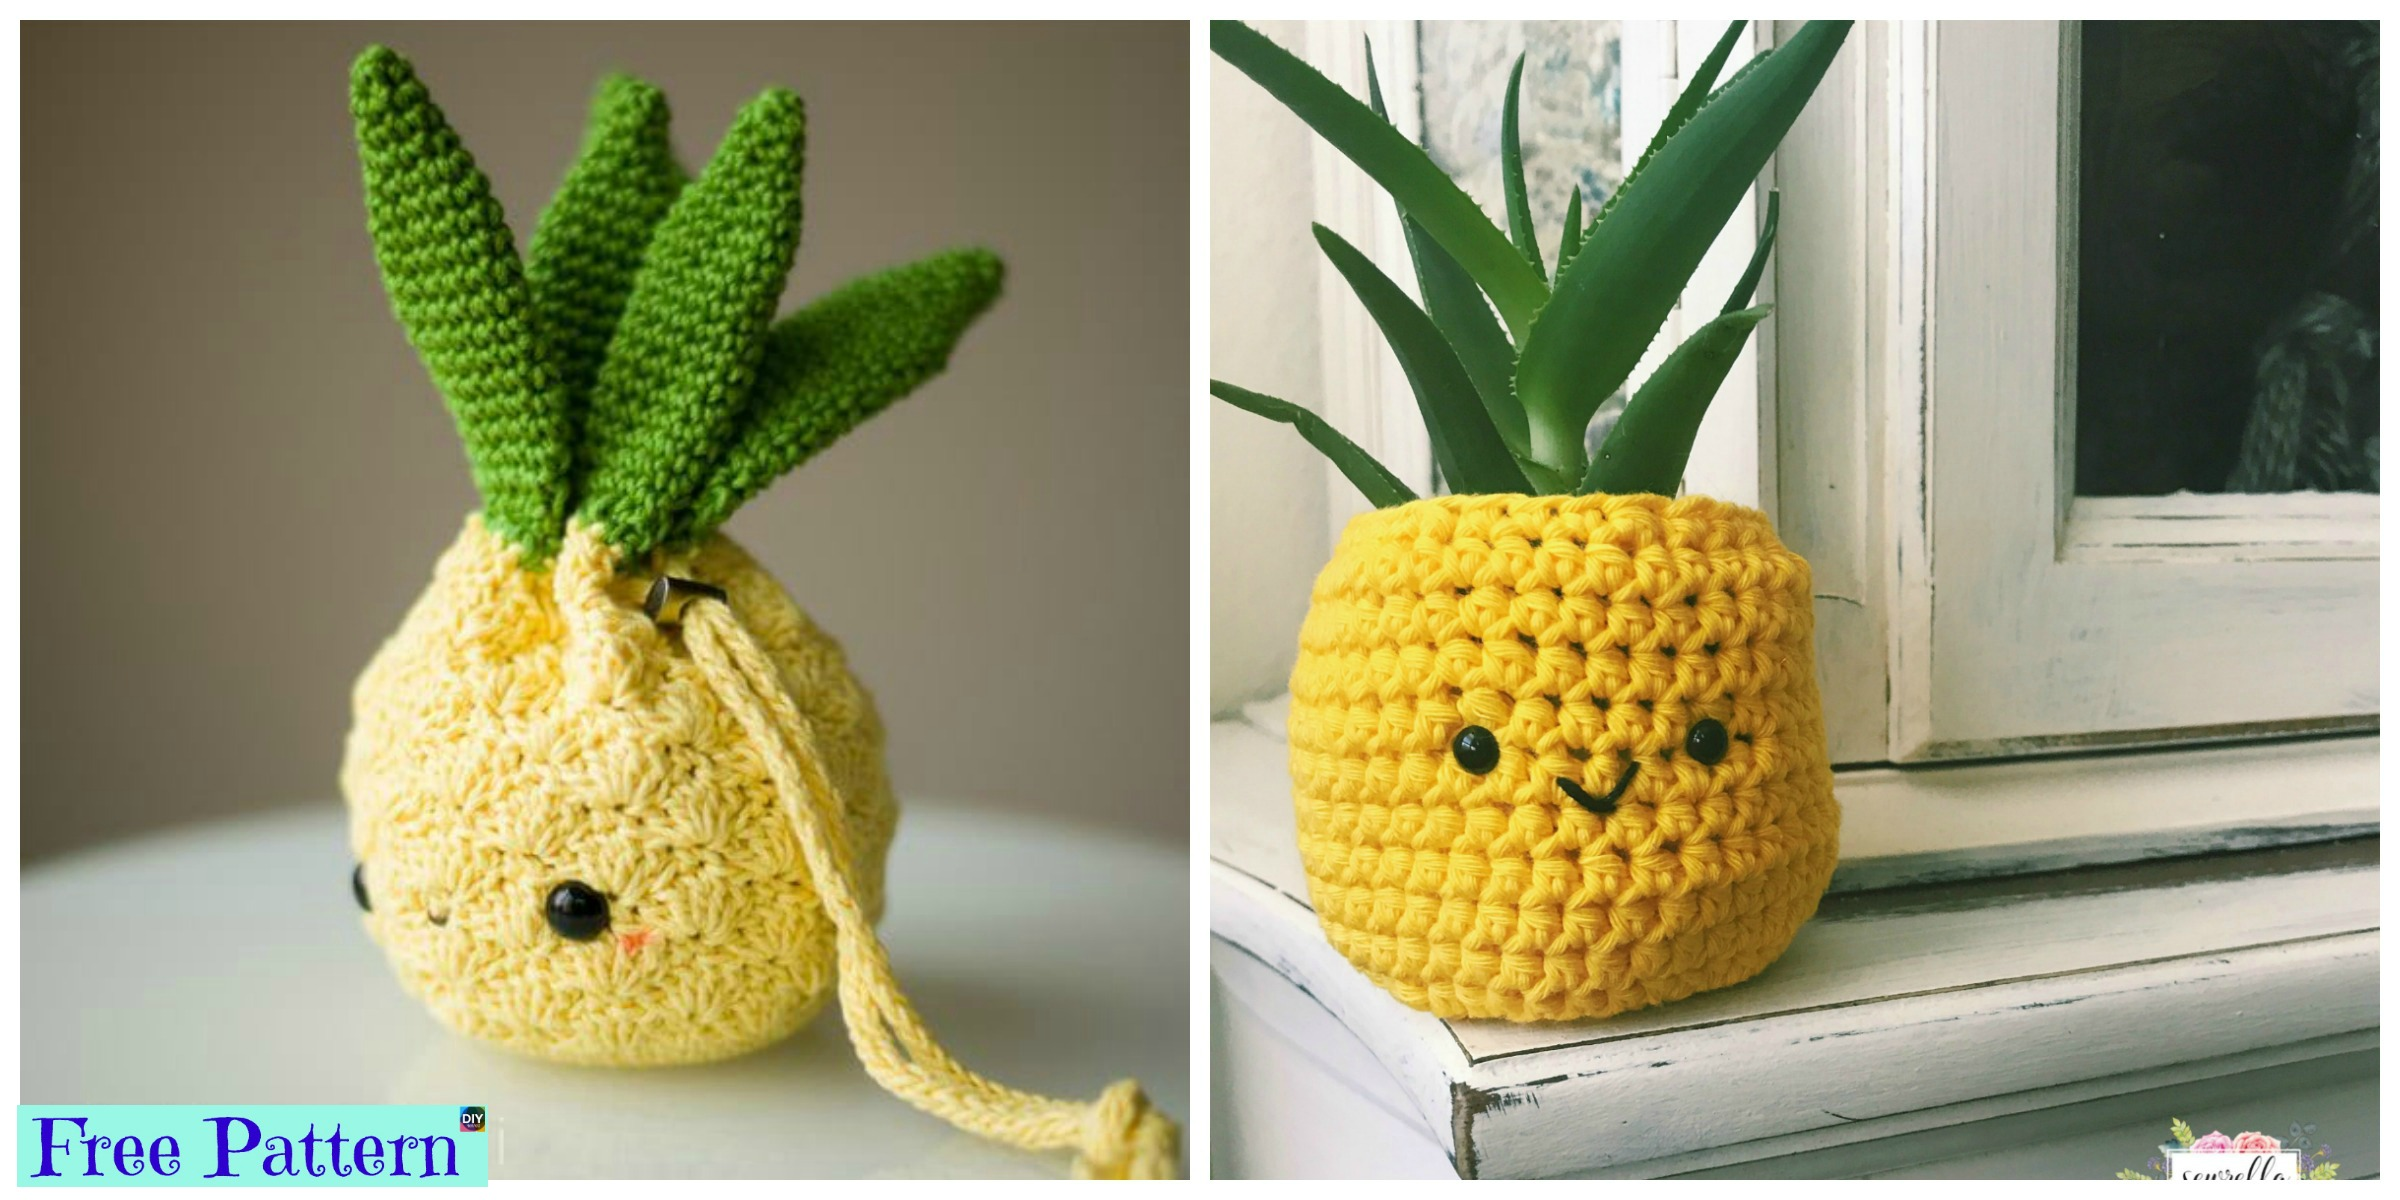 Crochet Amigurumi Pineapple Design – Free Patterns